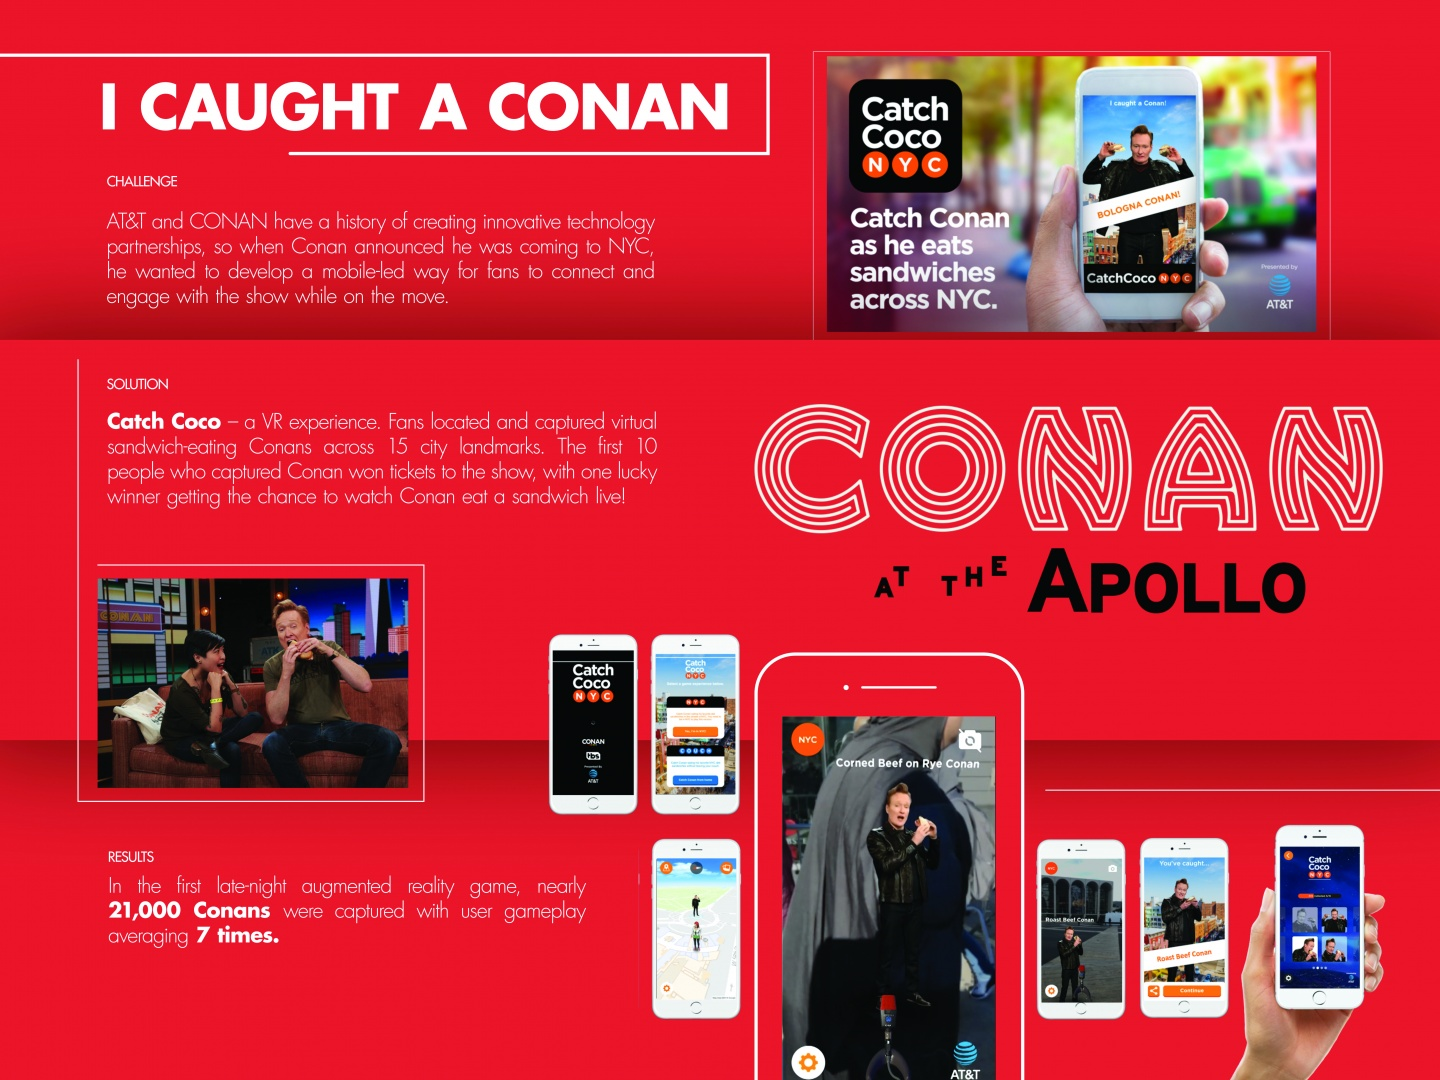 AT&T and Conan in NYC: Catch Coco App Thumbnail